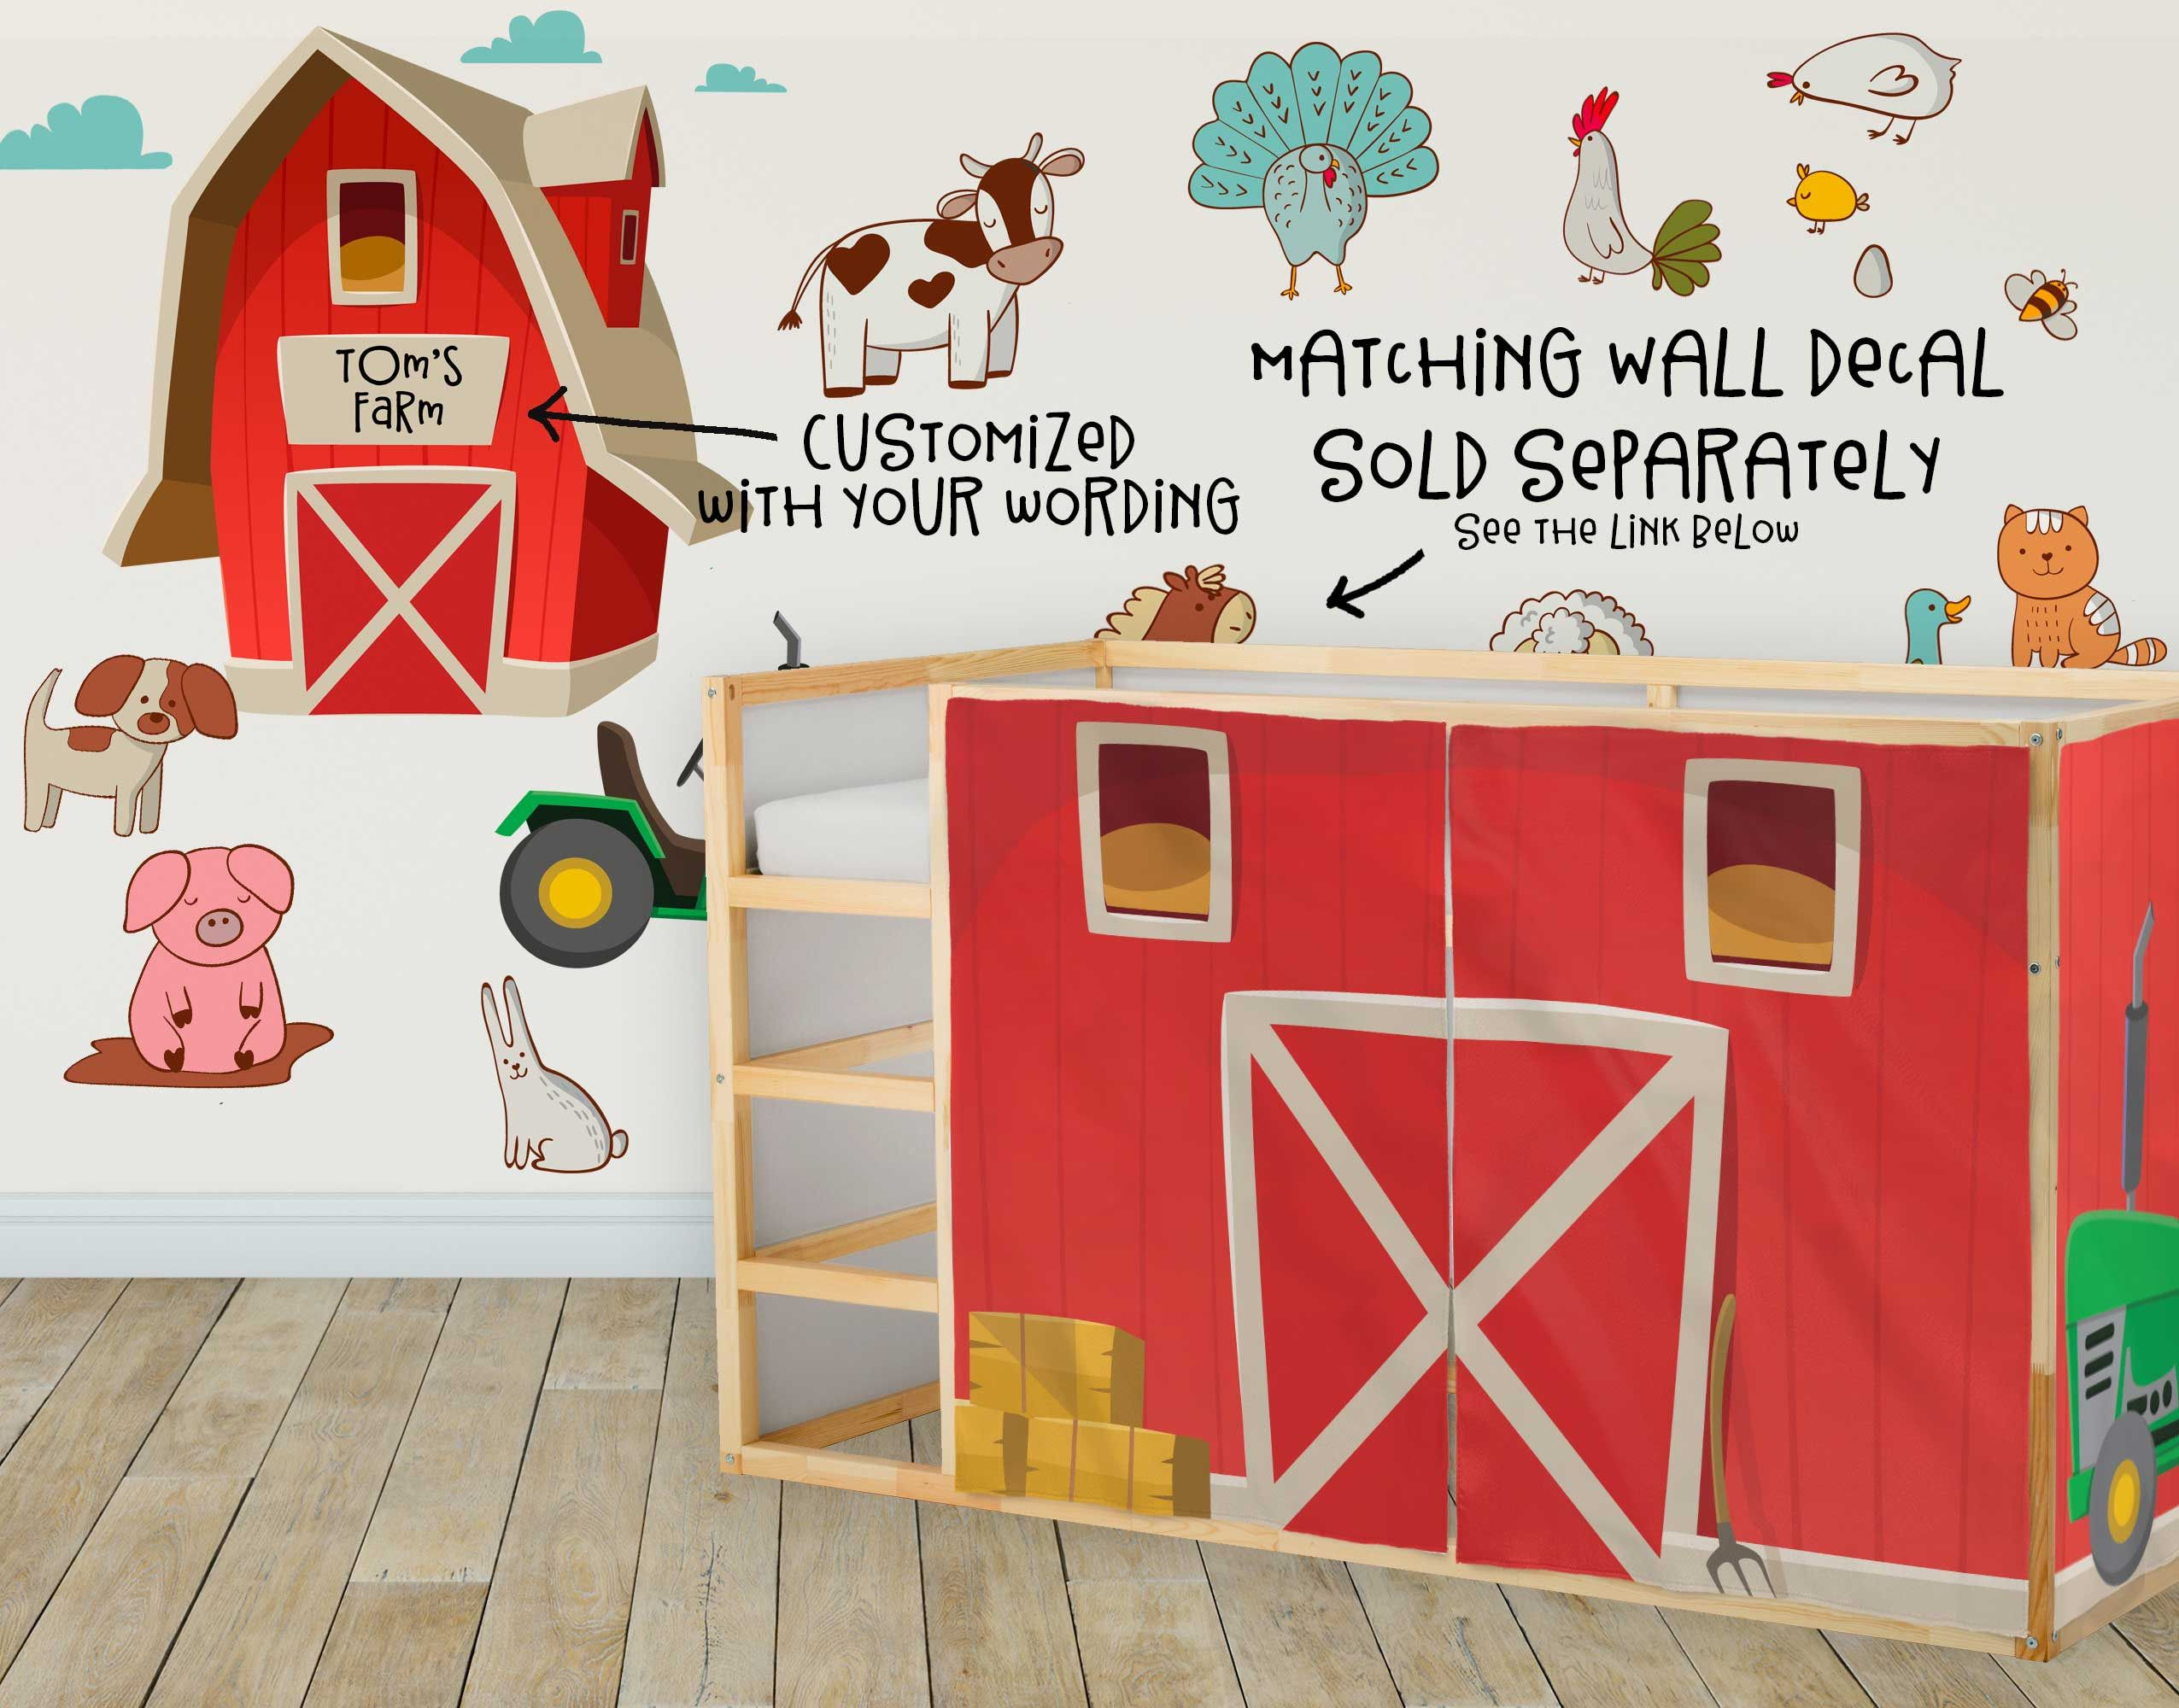 Farm Playhouse Curtains, Barn Ikea Kura Bed, Loft Bed